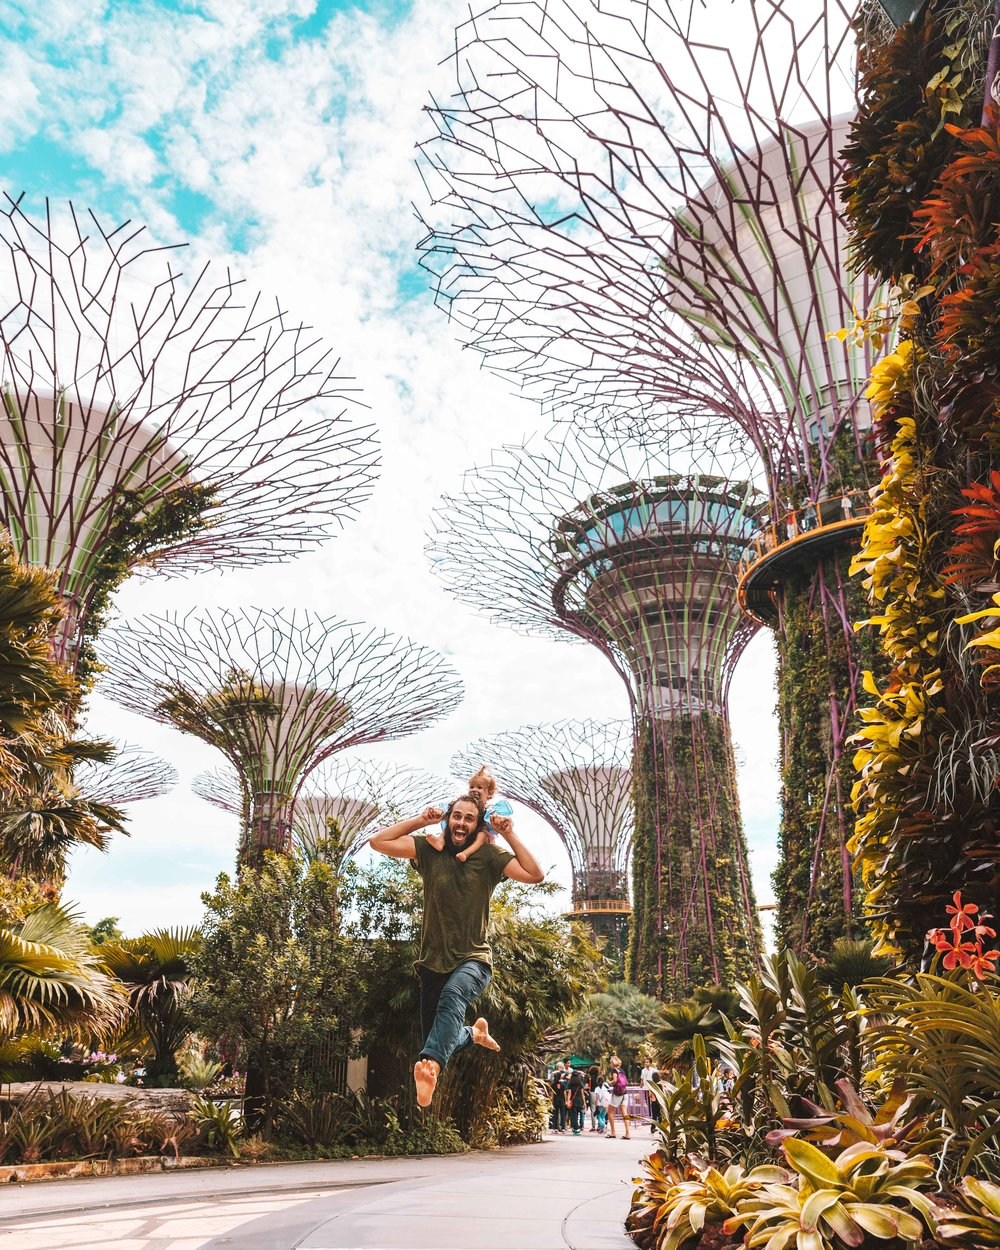 I Gardens By the Bay e un papà saltante